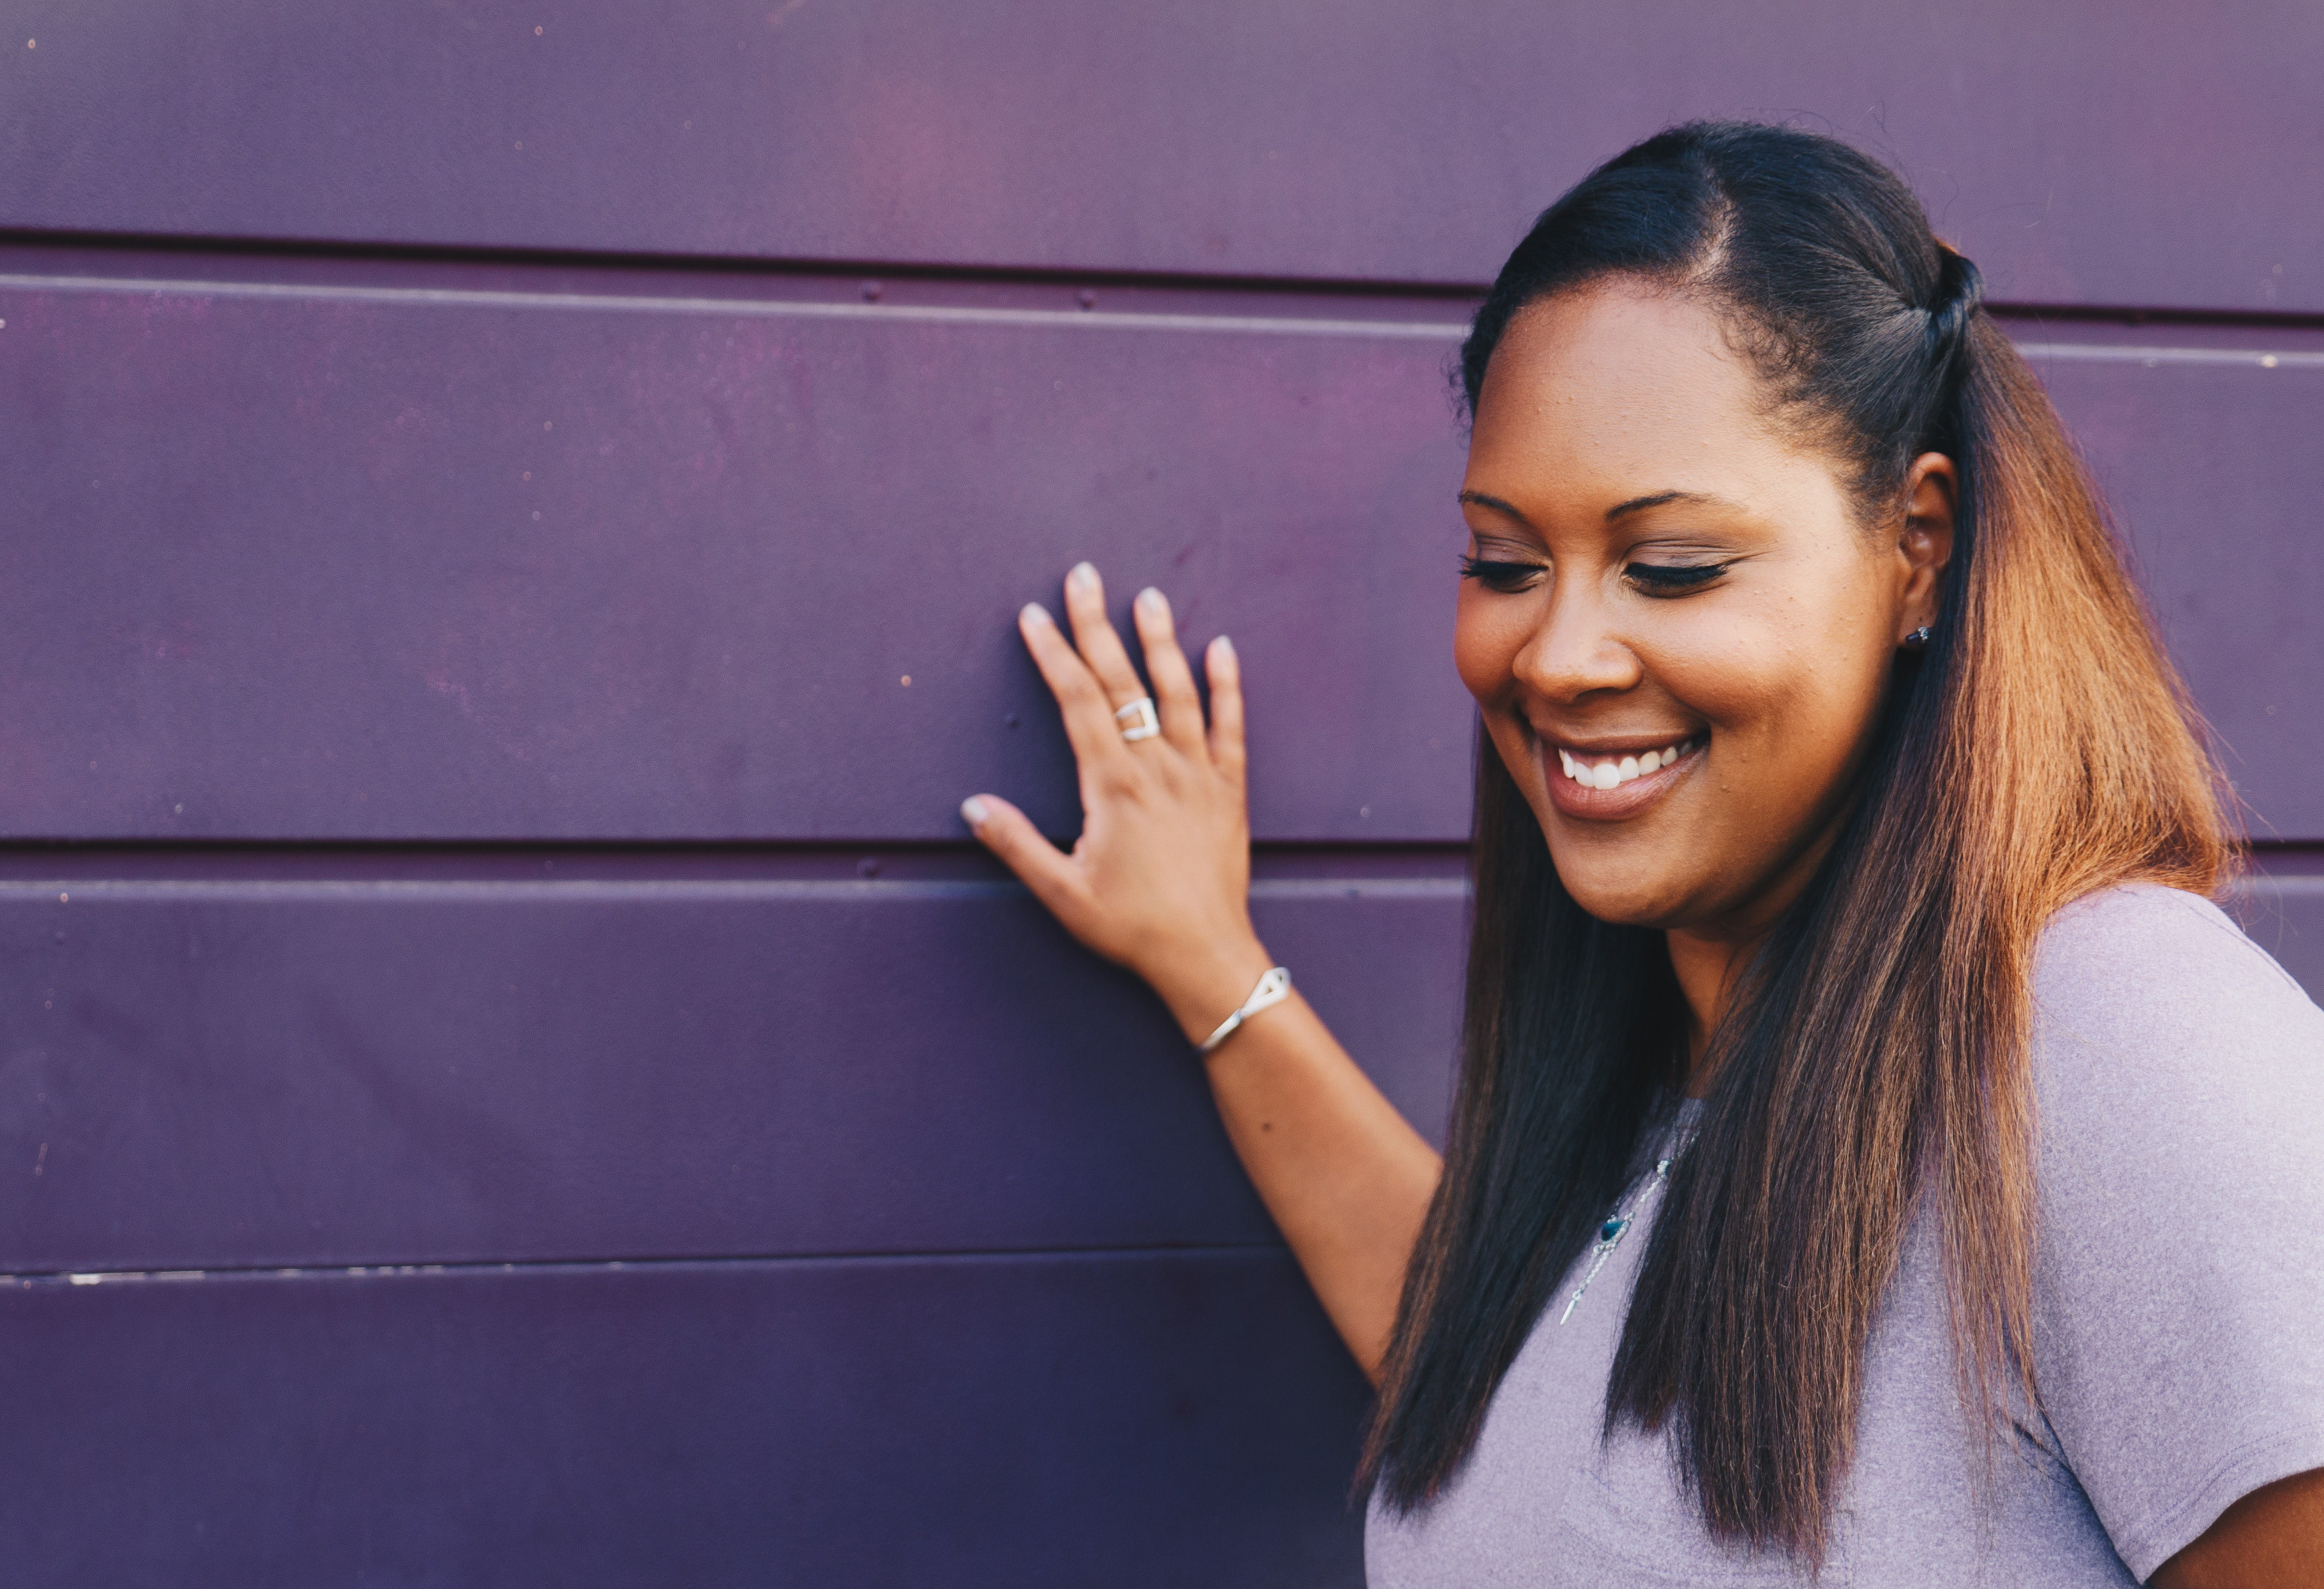 Girl by a purple wall with a simple half-up hairstyle.